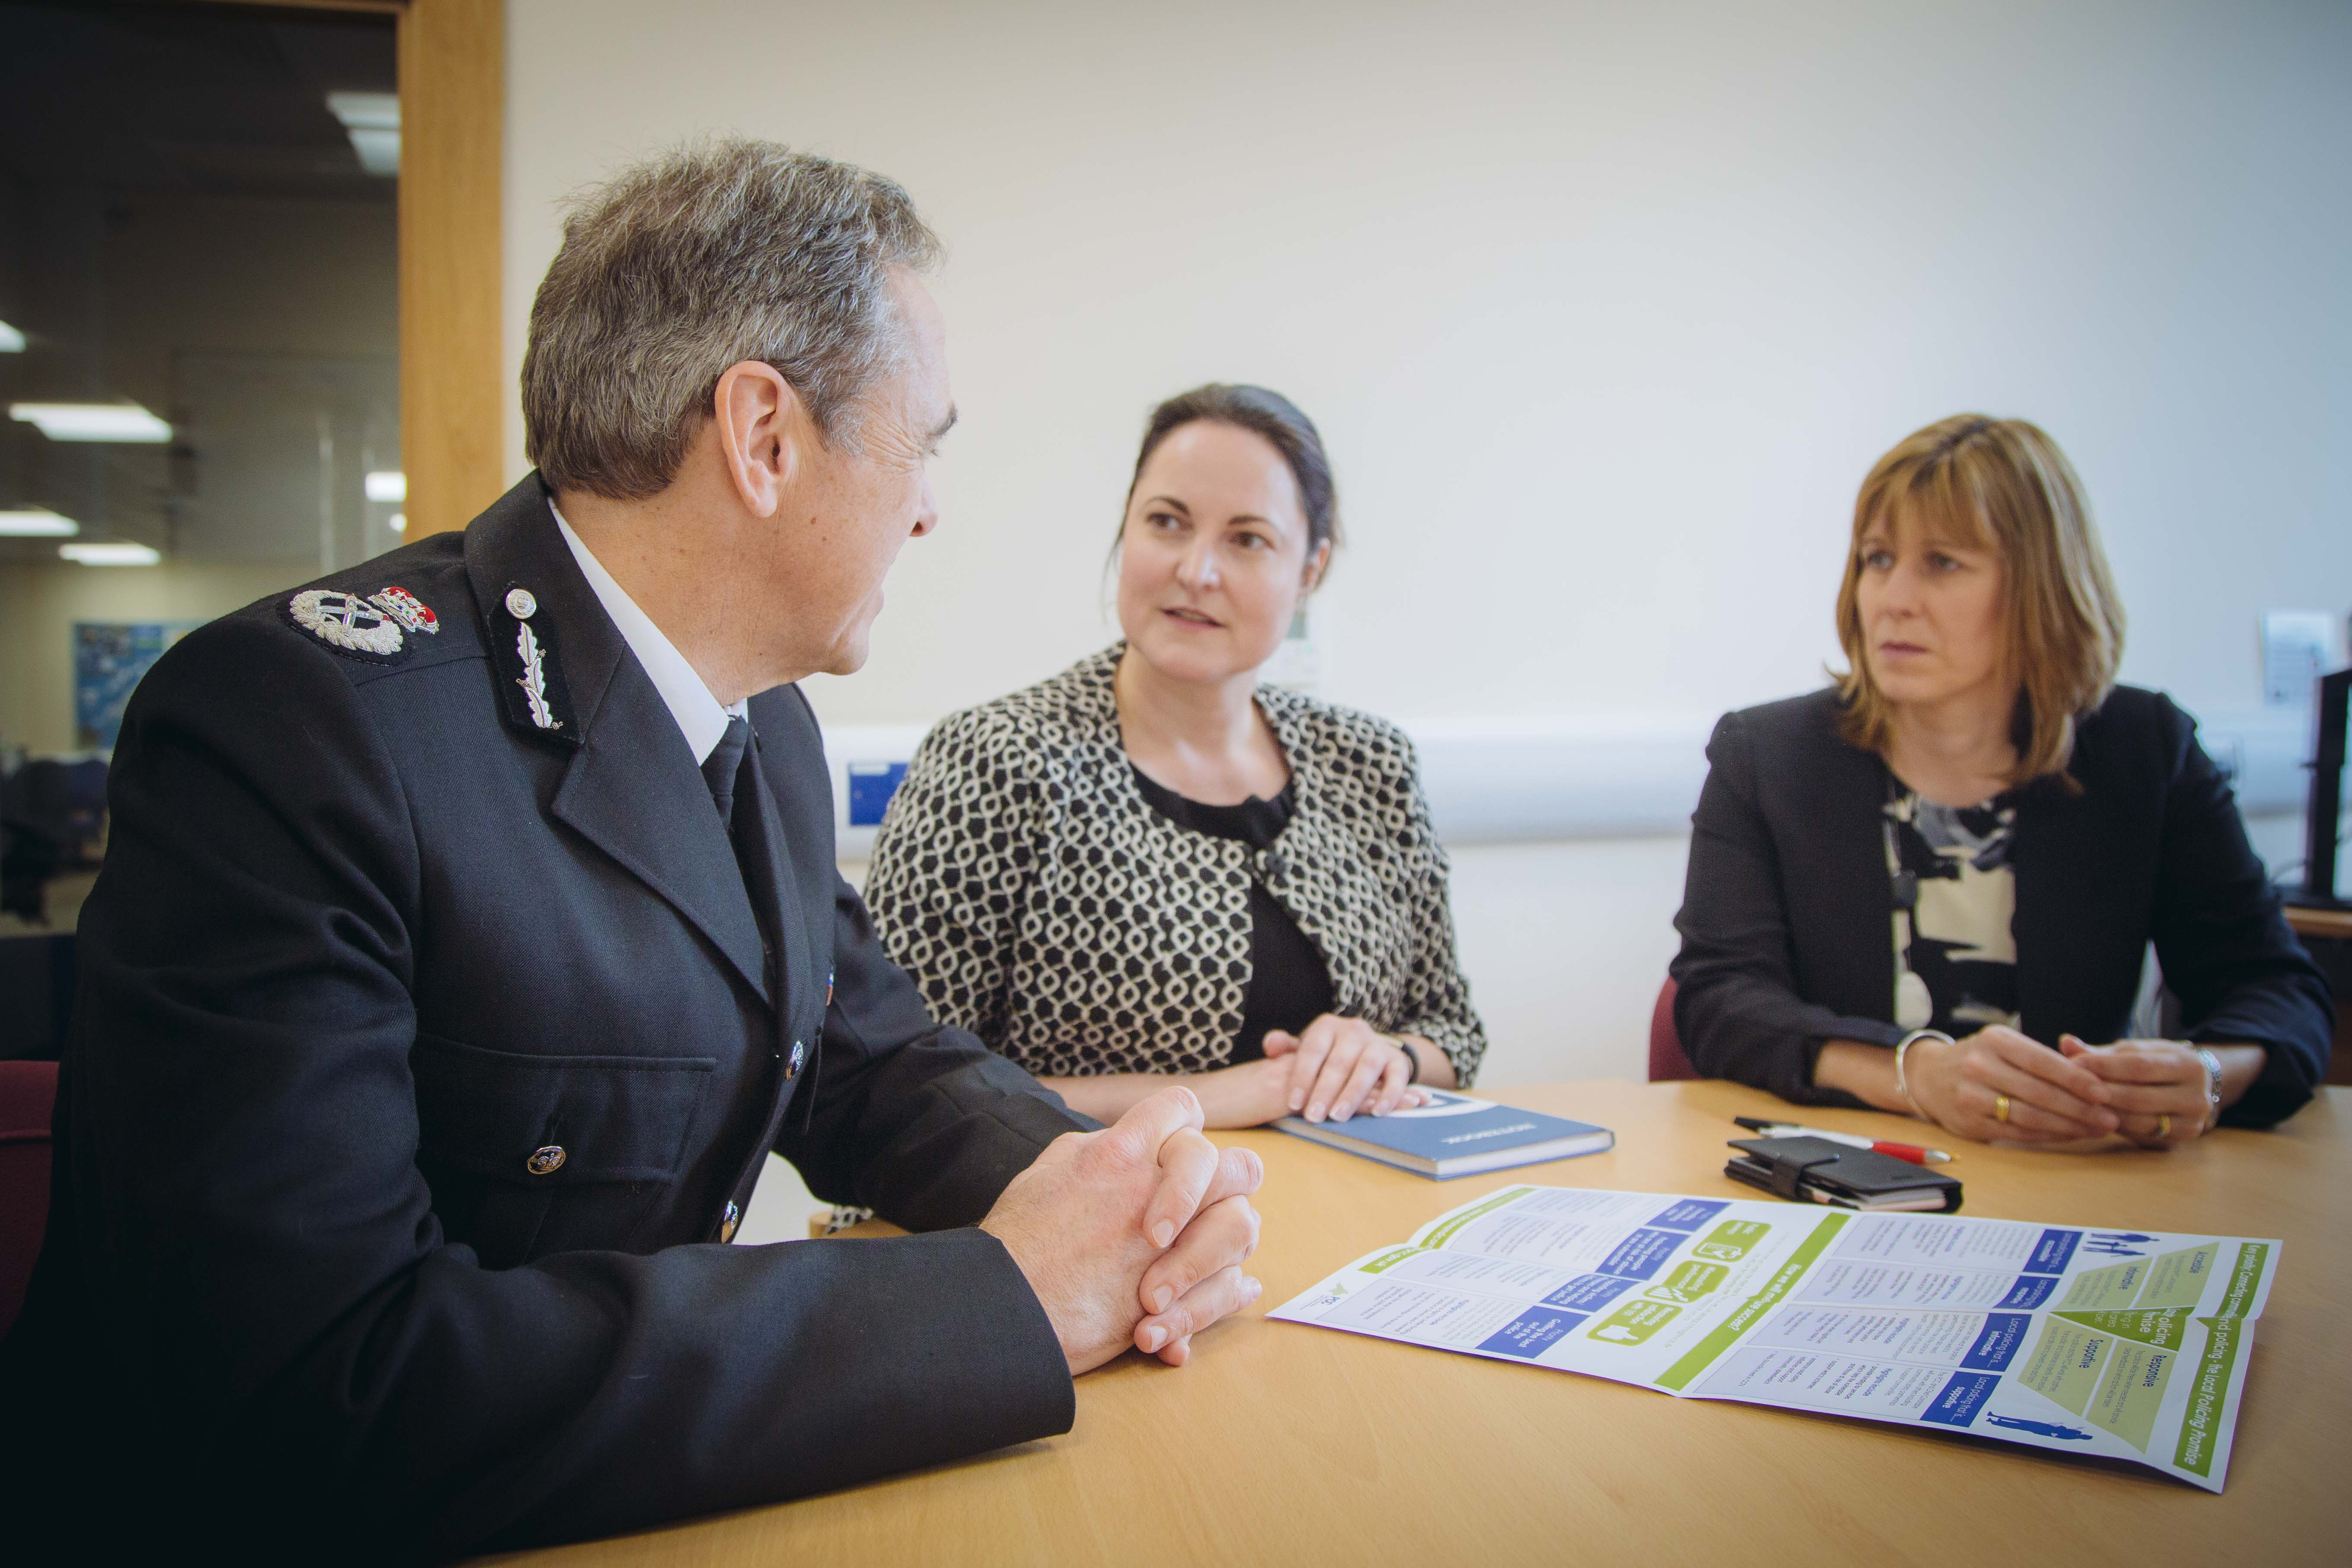 Complaints against the Chief Constable